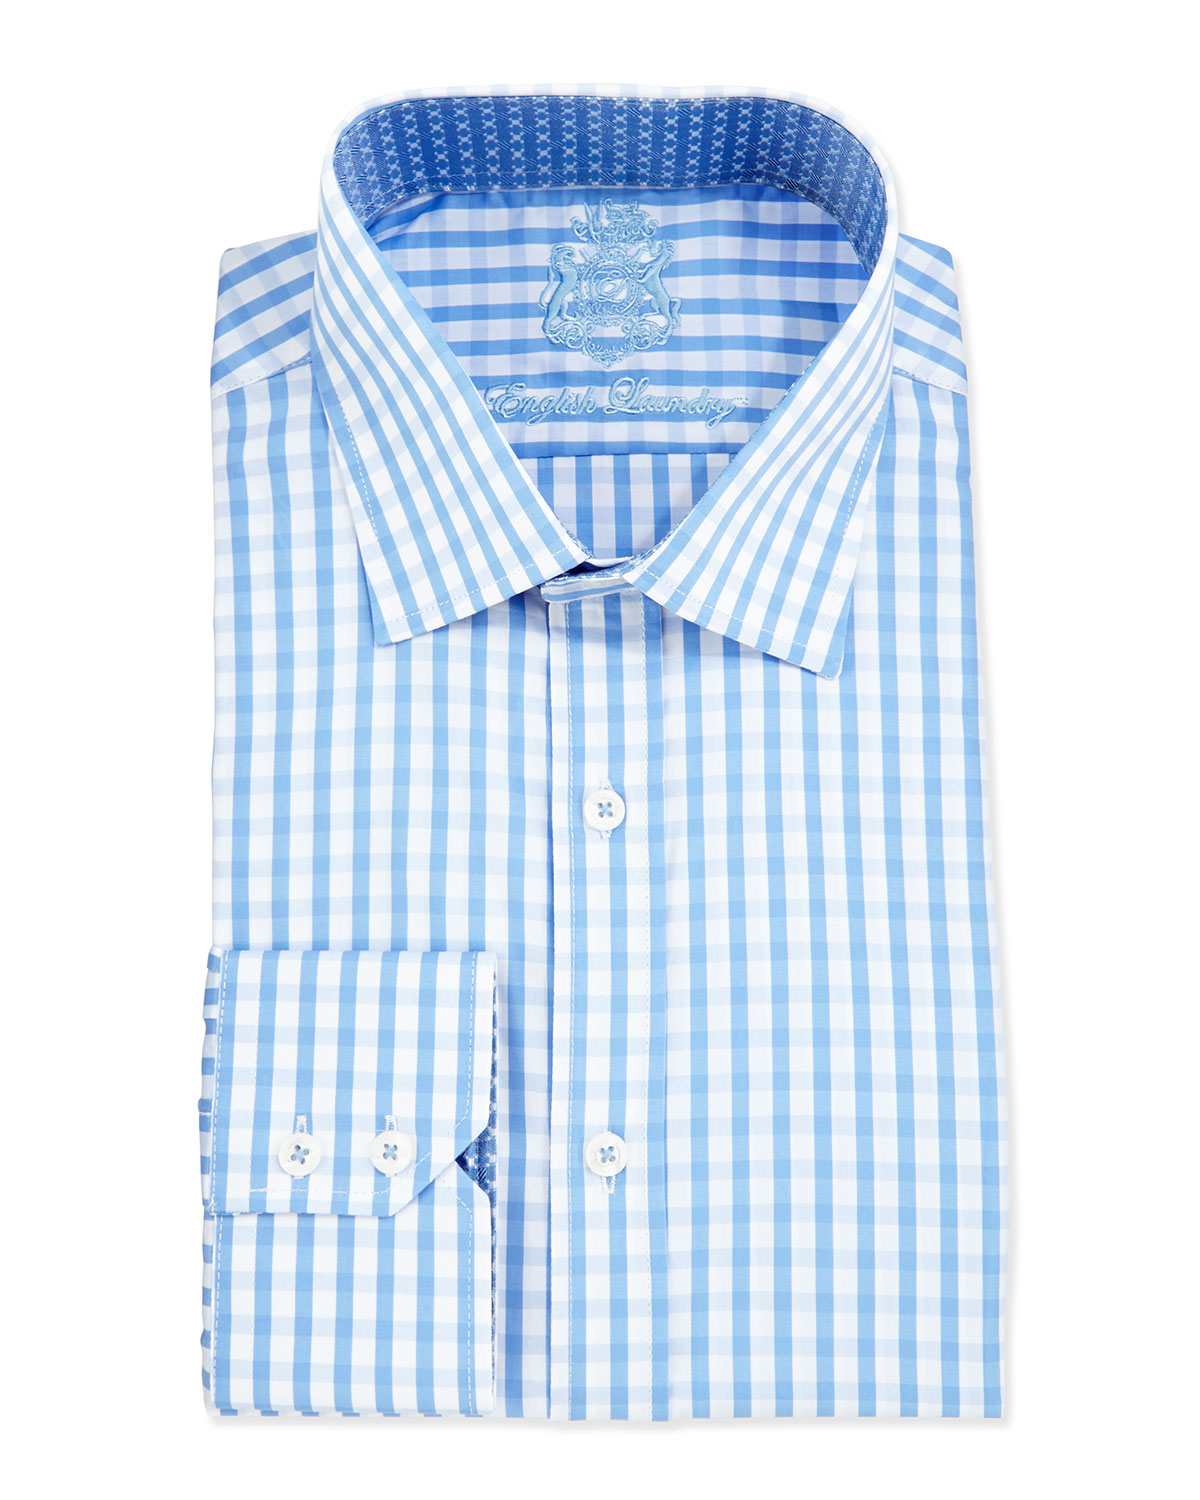 Lyst English Laundry Gingham Check Woven Dress Shirt In